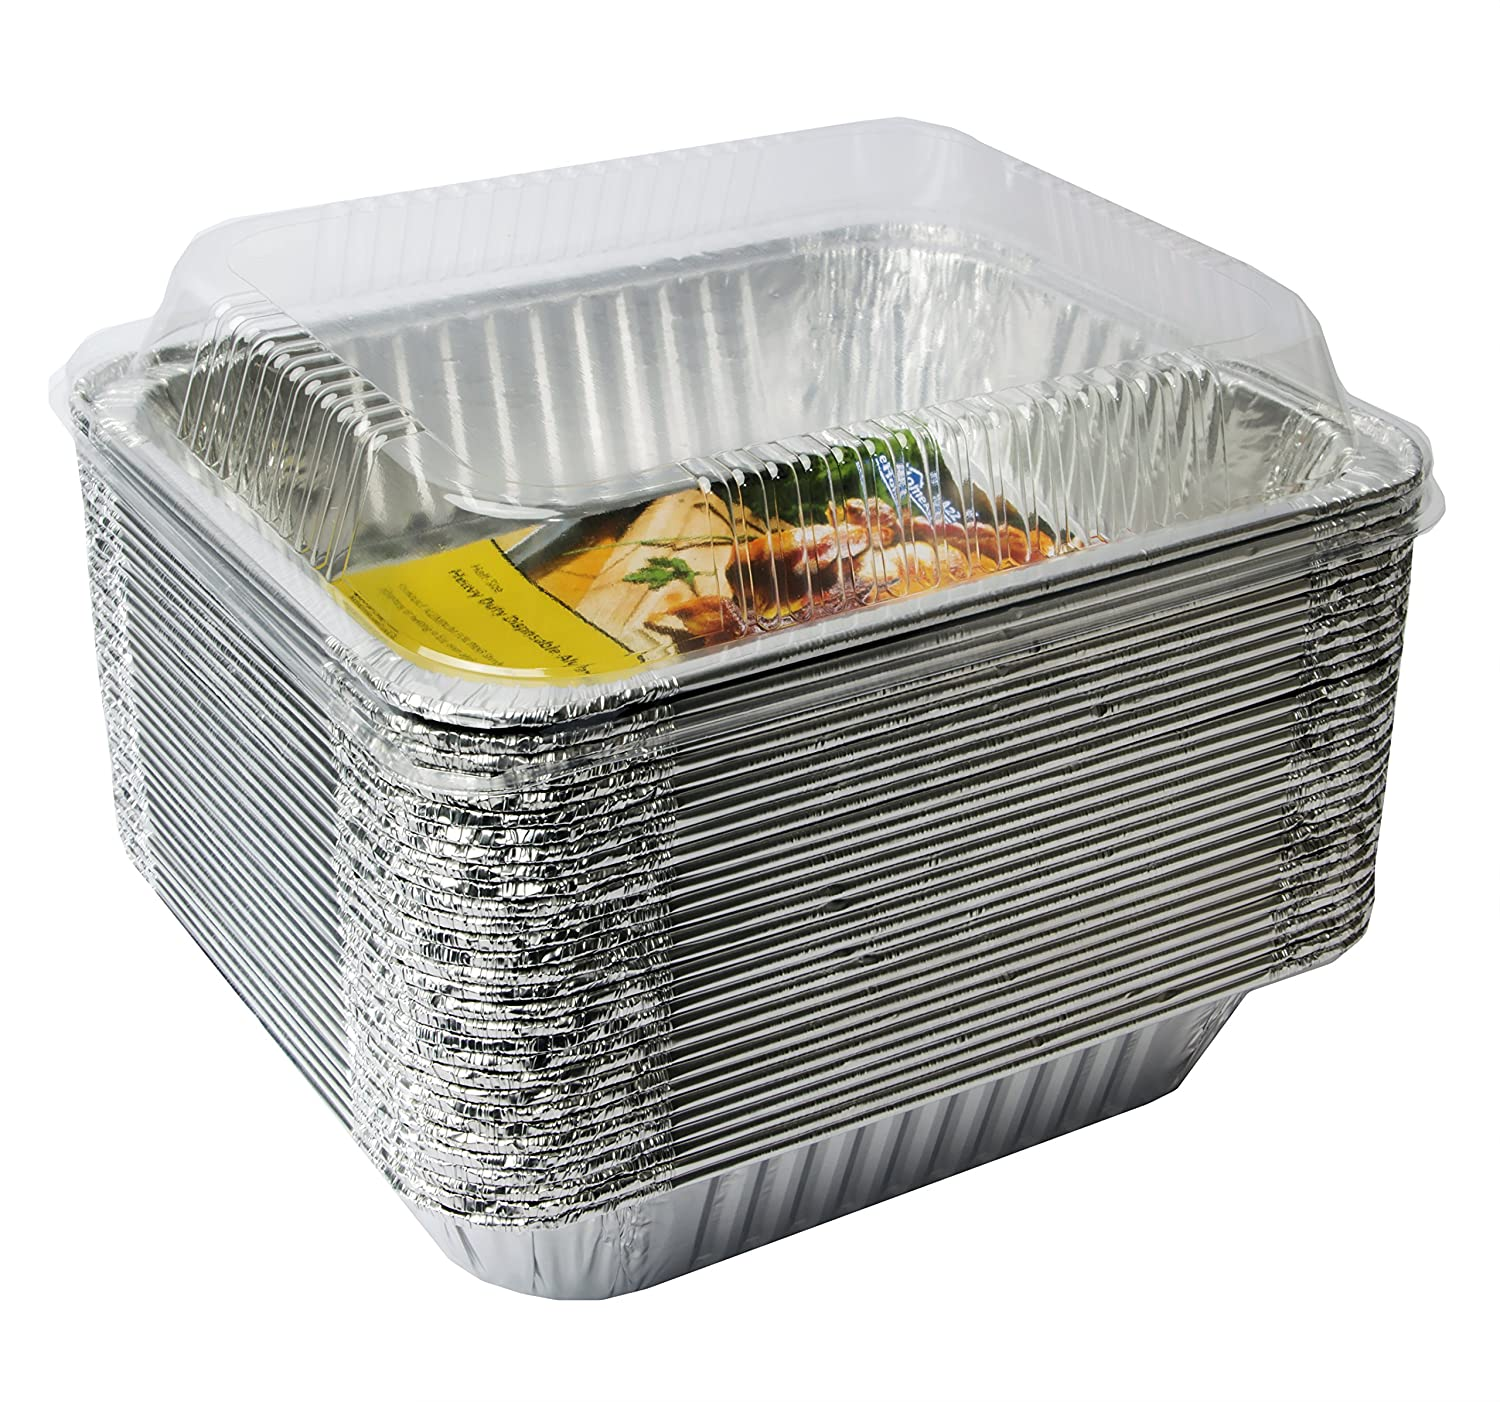 ehomea2zフルサイズDeep使い捨てアルミ箔蒸気テーブルPans with Foil Lids For Cooking、Roasting、Broiling、Baking – 21 x 13 x 3 2 Lb Loaf Pan B079Q2M8XB 2 Lb Loaf Pan|50  2 Lb Loaf Pan